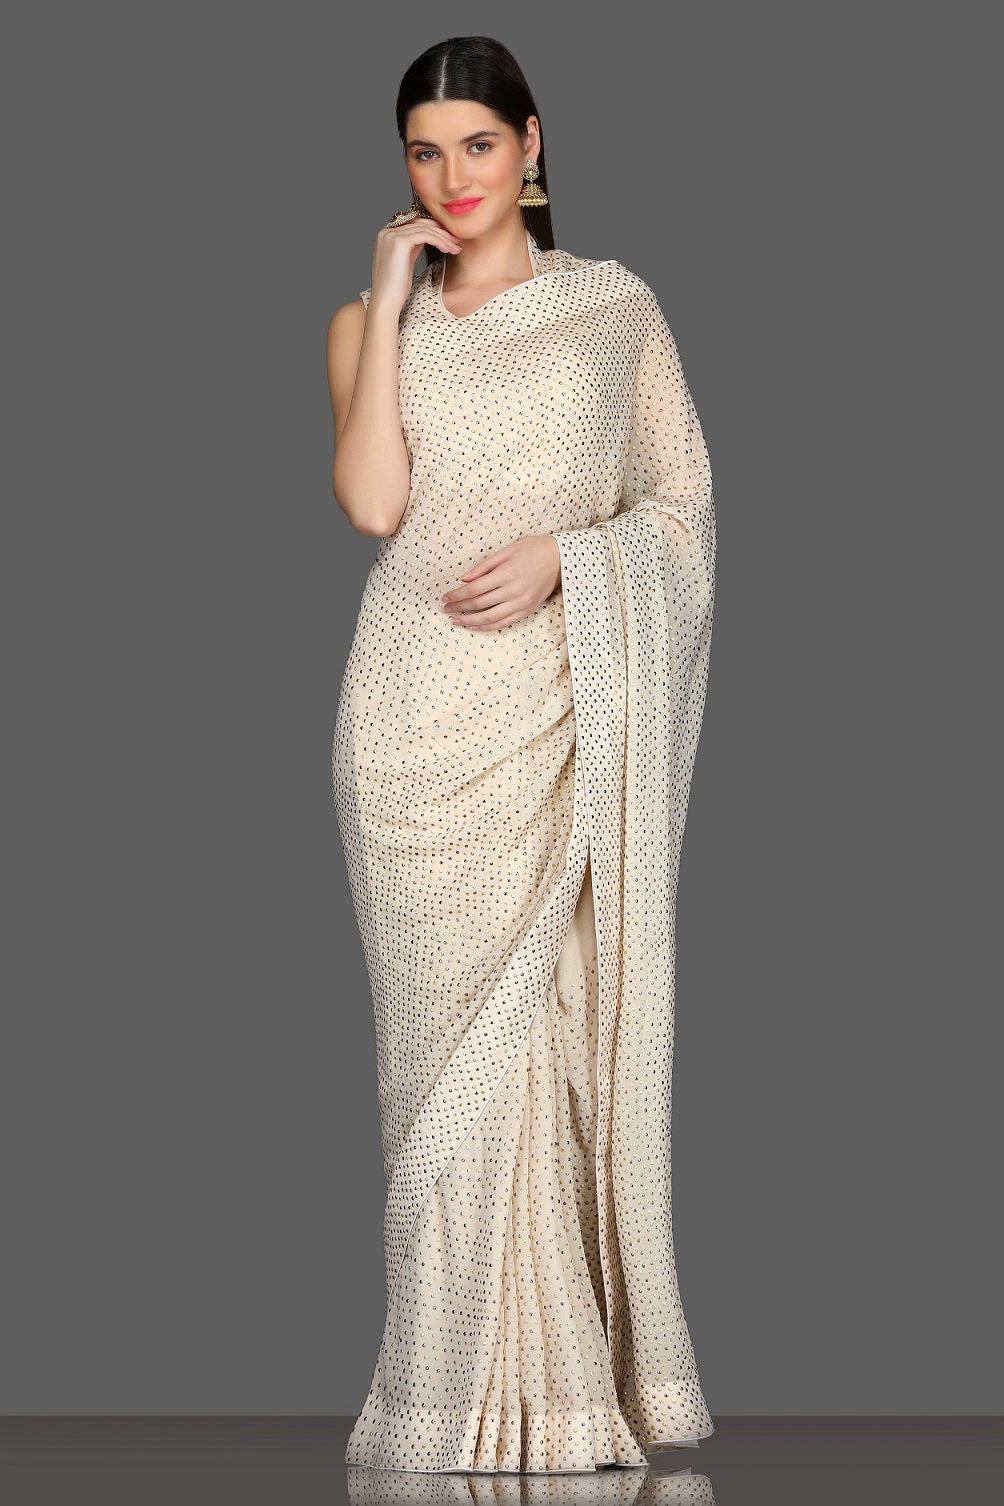 Buy elegant off-white designer saree online in USA with matching saree blouse. Shine at parties with glamorous designer sarees, Bollywood sarees from Pure Elegance Indian fashion store in USA.-full view